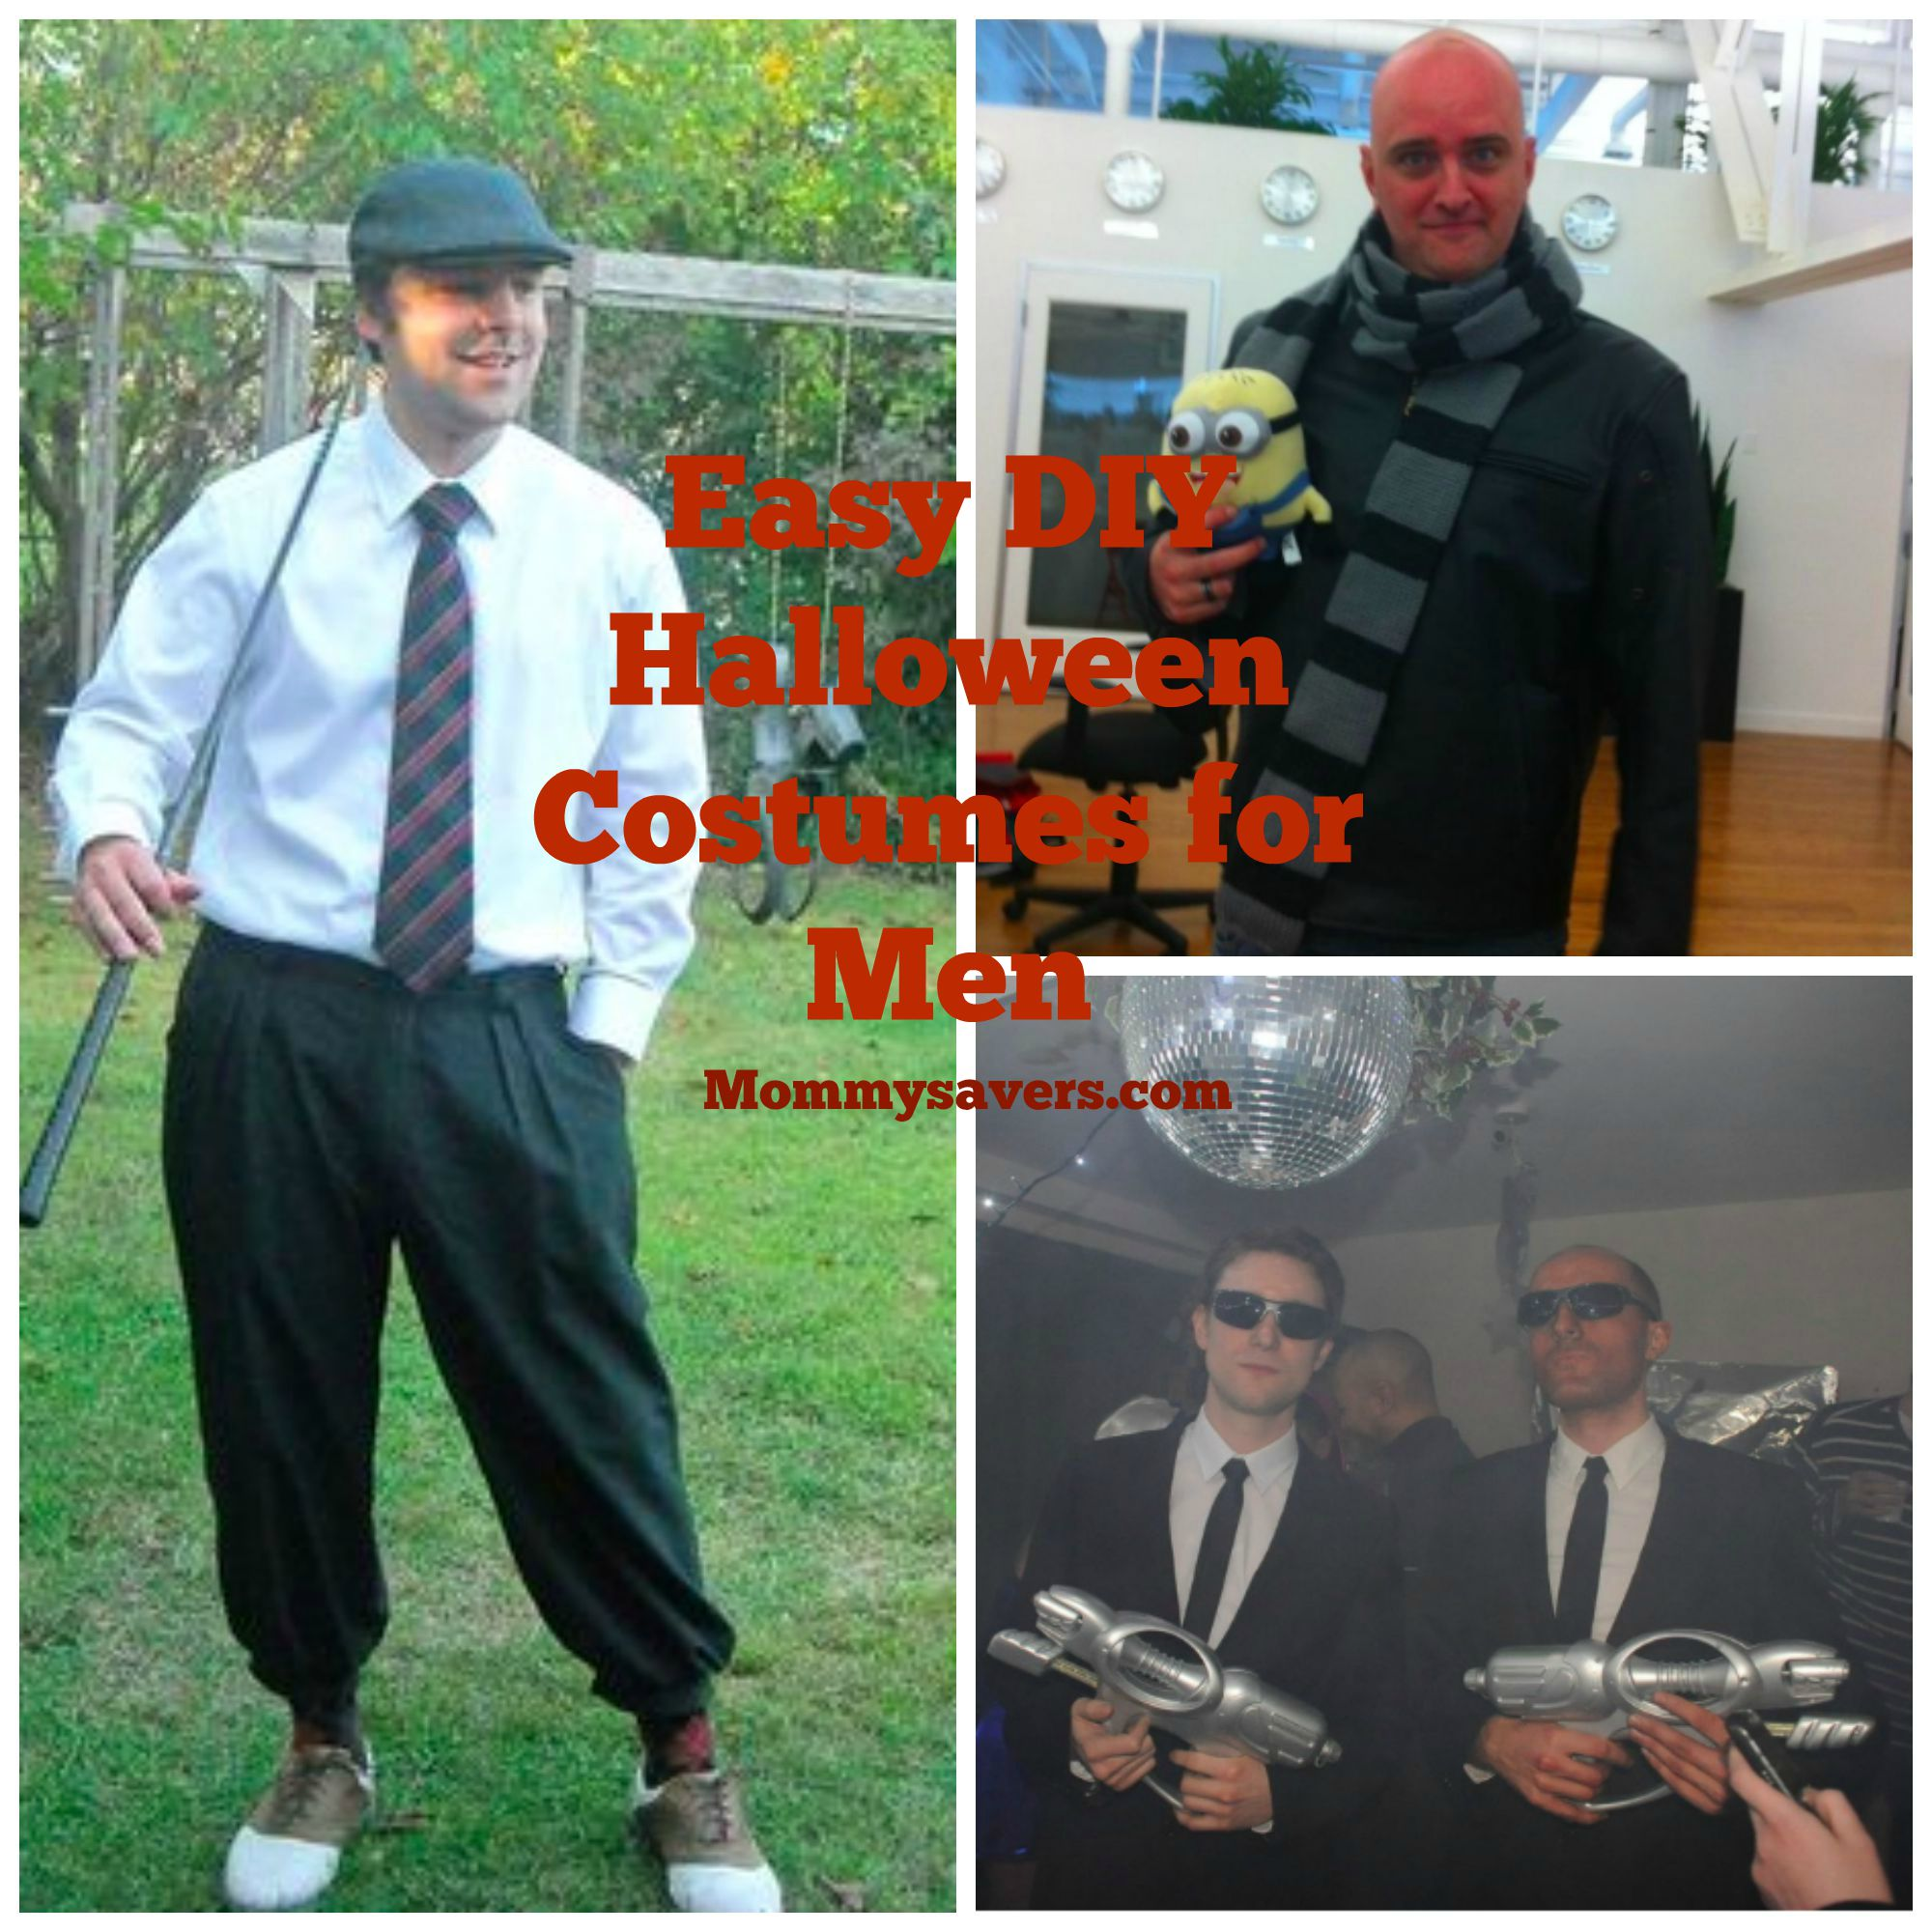 DIY Easy Halloween Costume Ideas for Men | Mommysavers